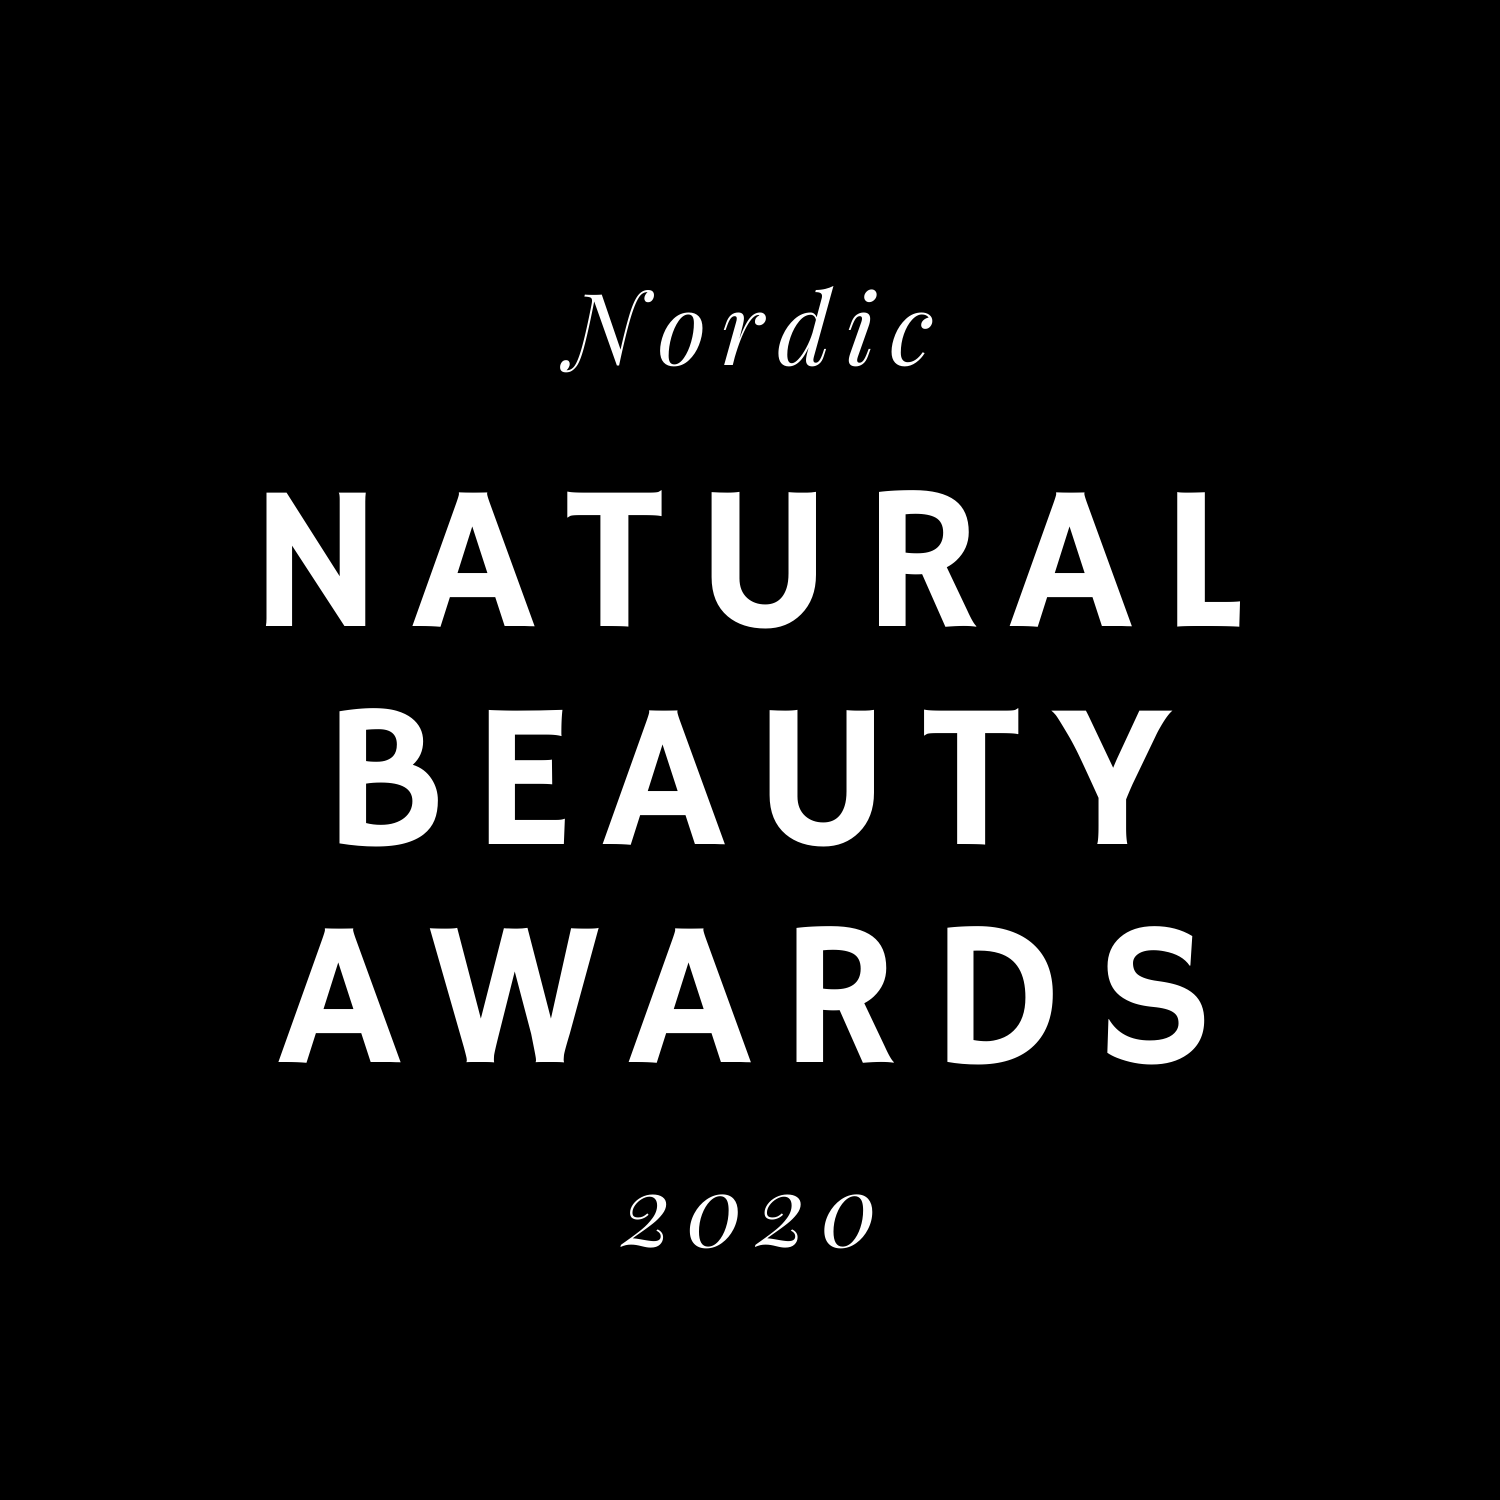 The winner of Nordic Natural Beauty Awards